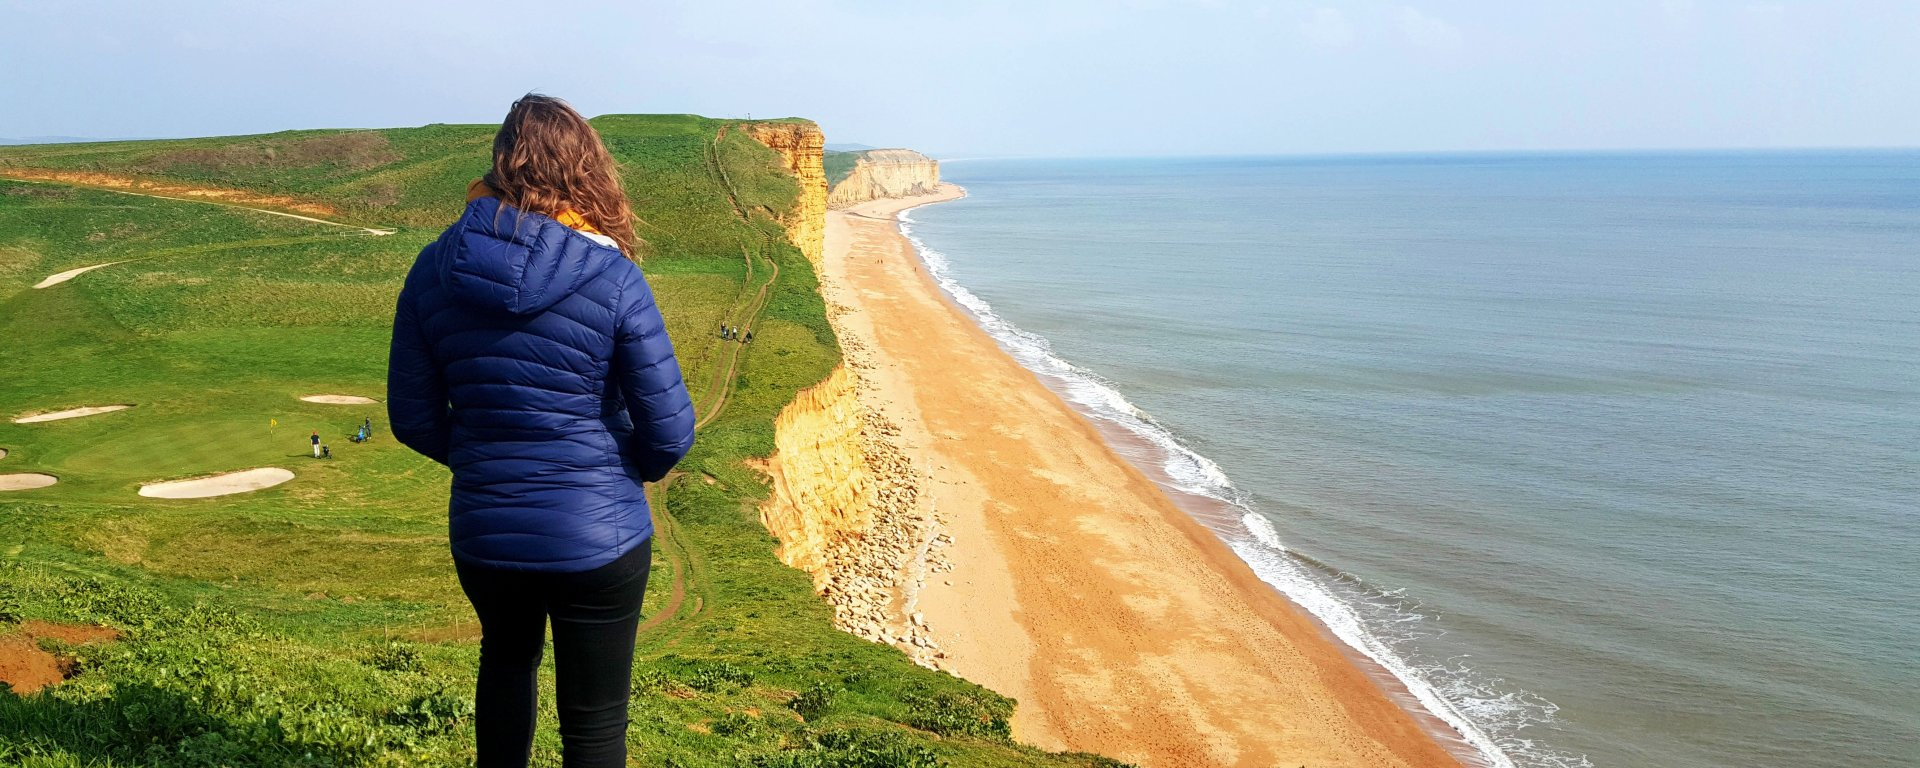 Hiking on the South West Coast Path - West Bay to West Bexington